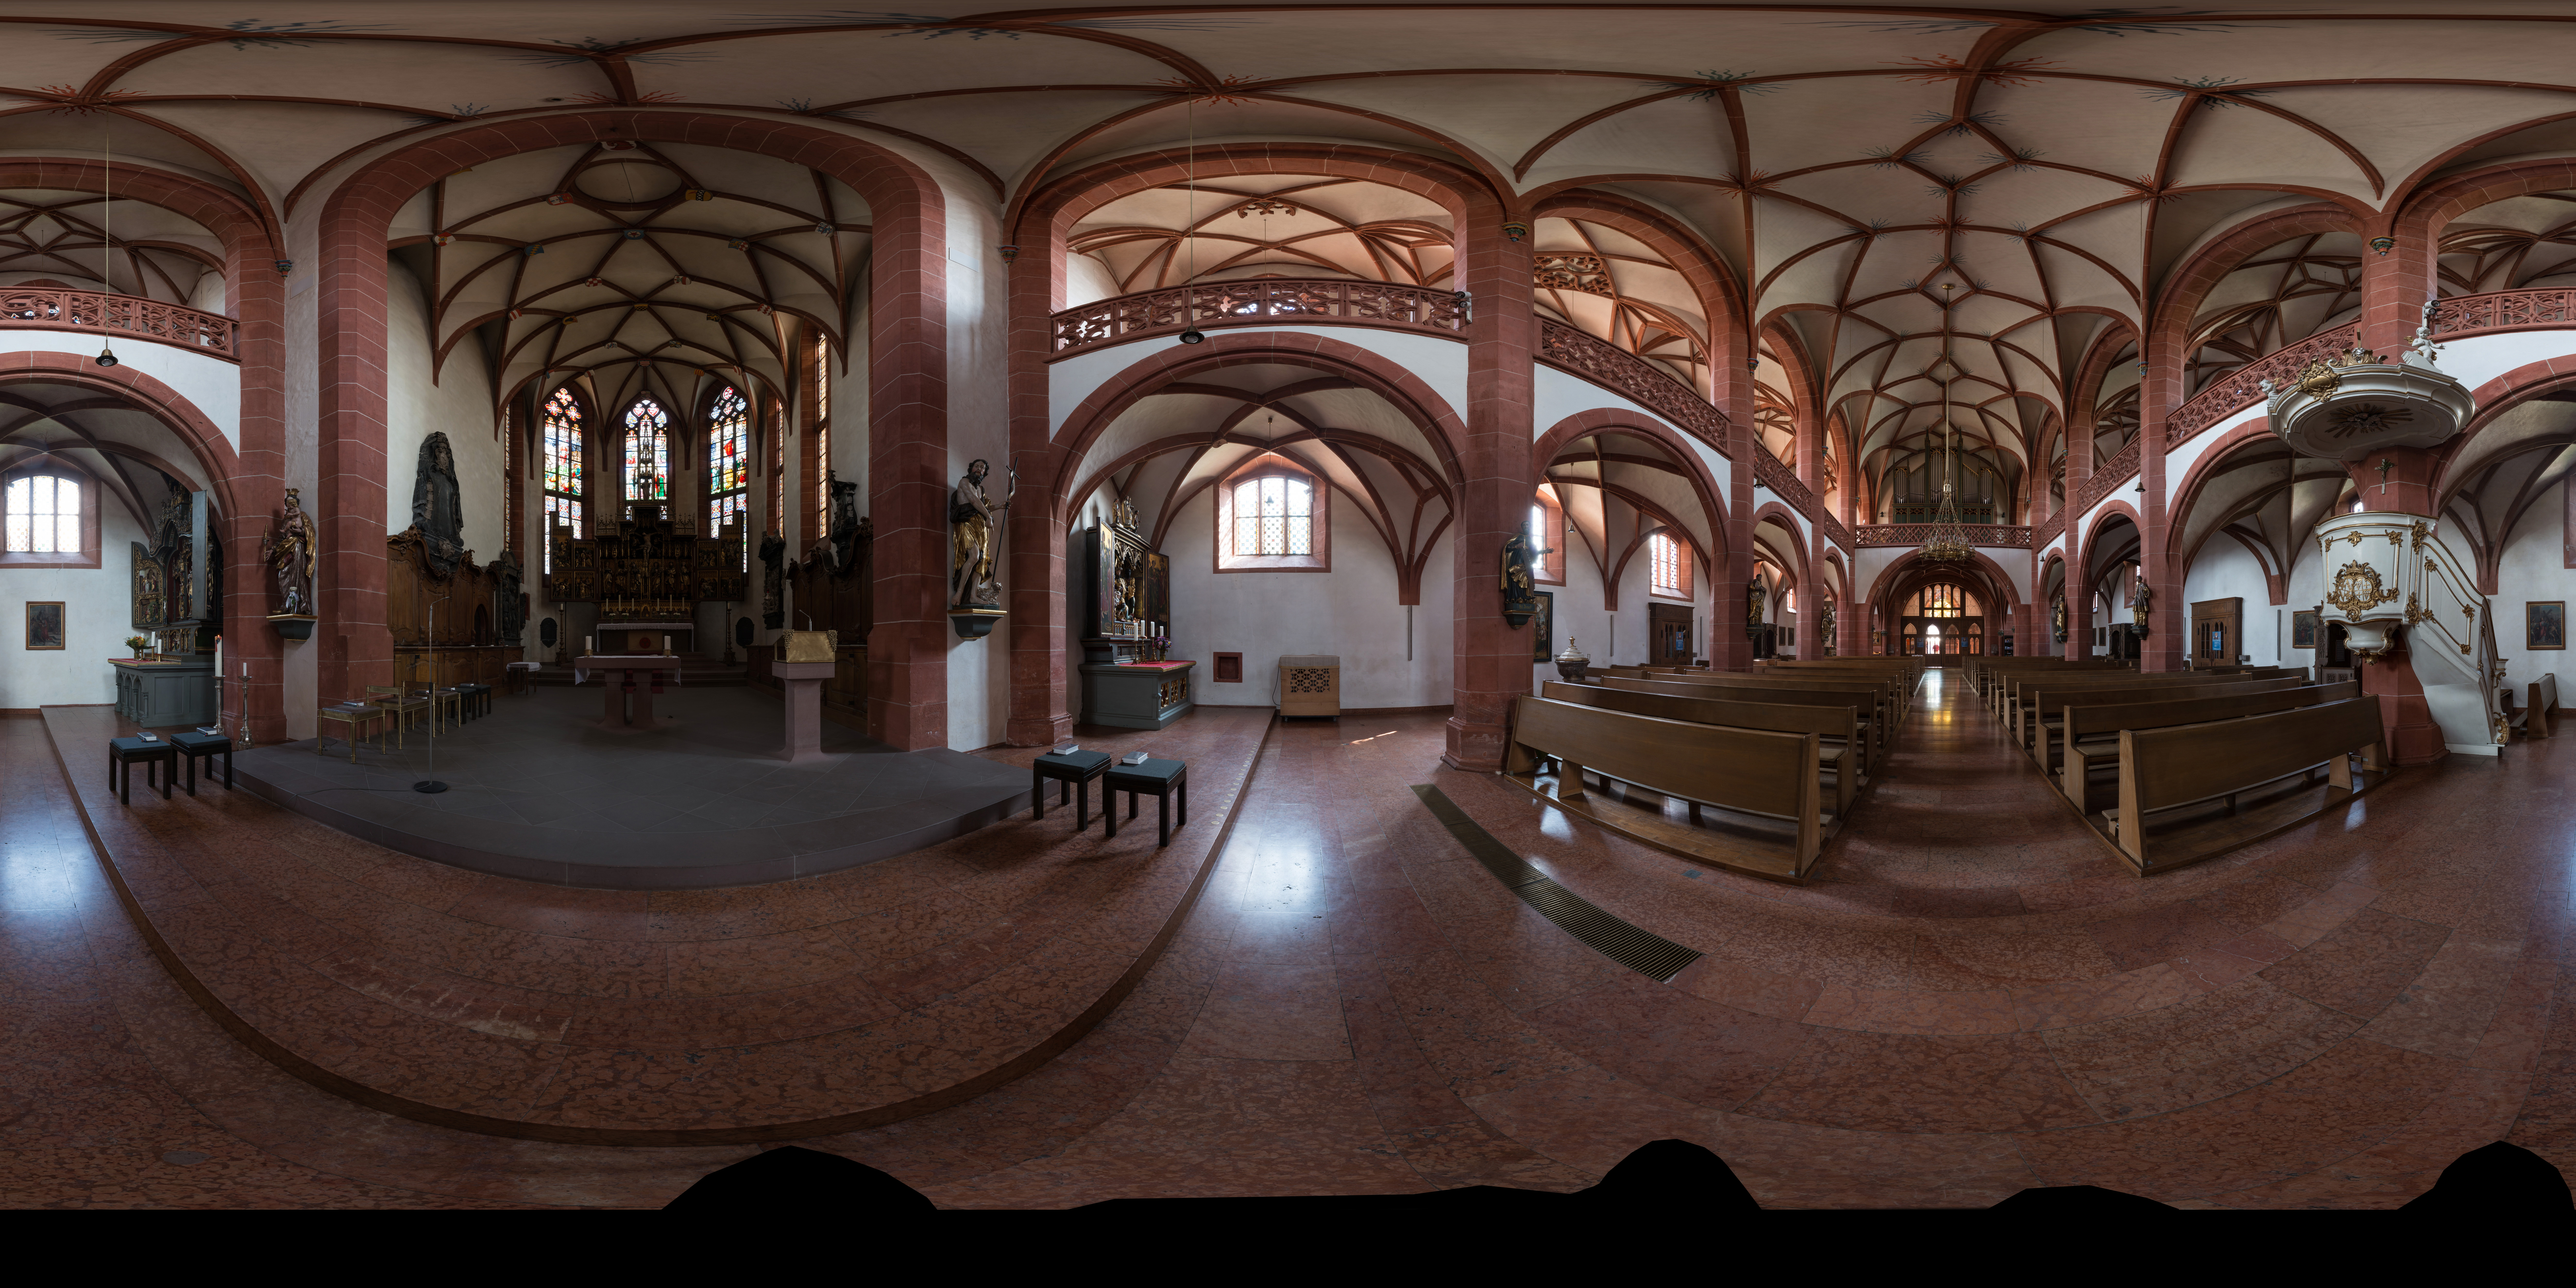 Commons talk:Project to create spherical panoramas of